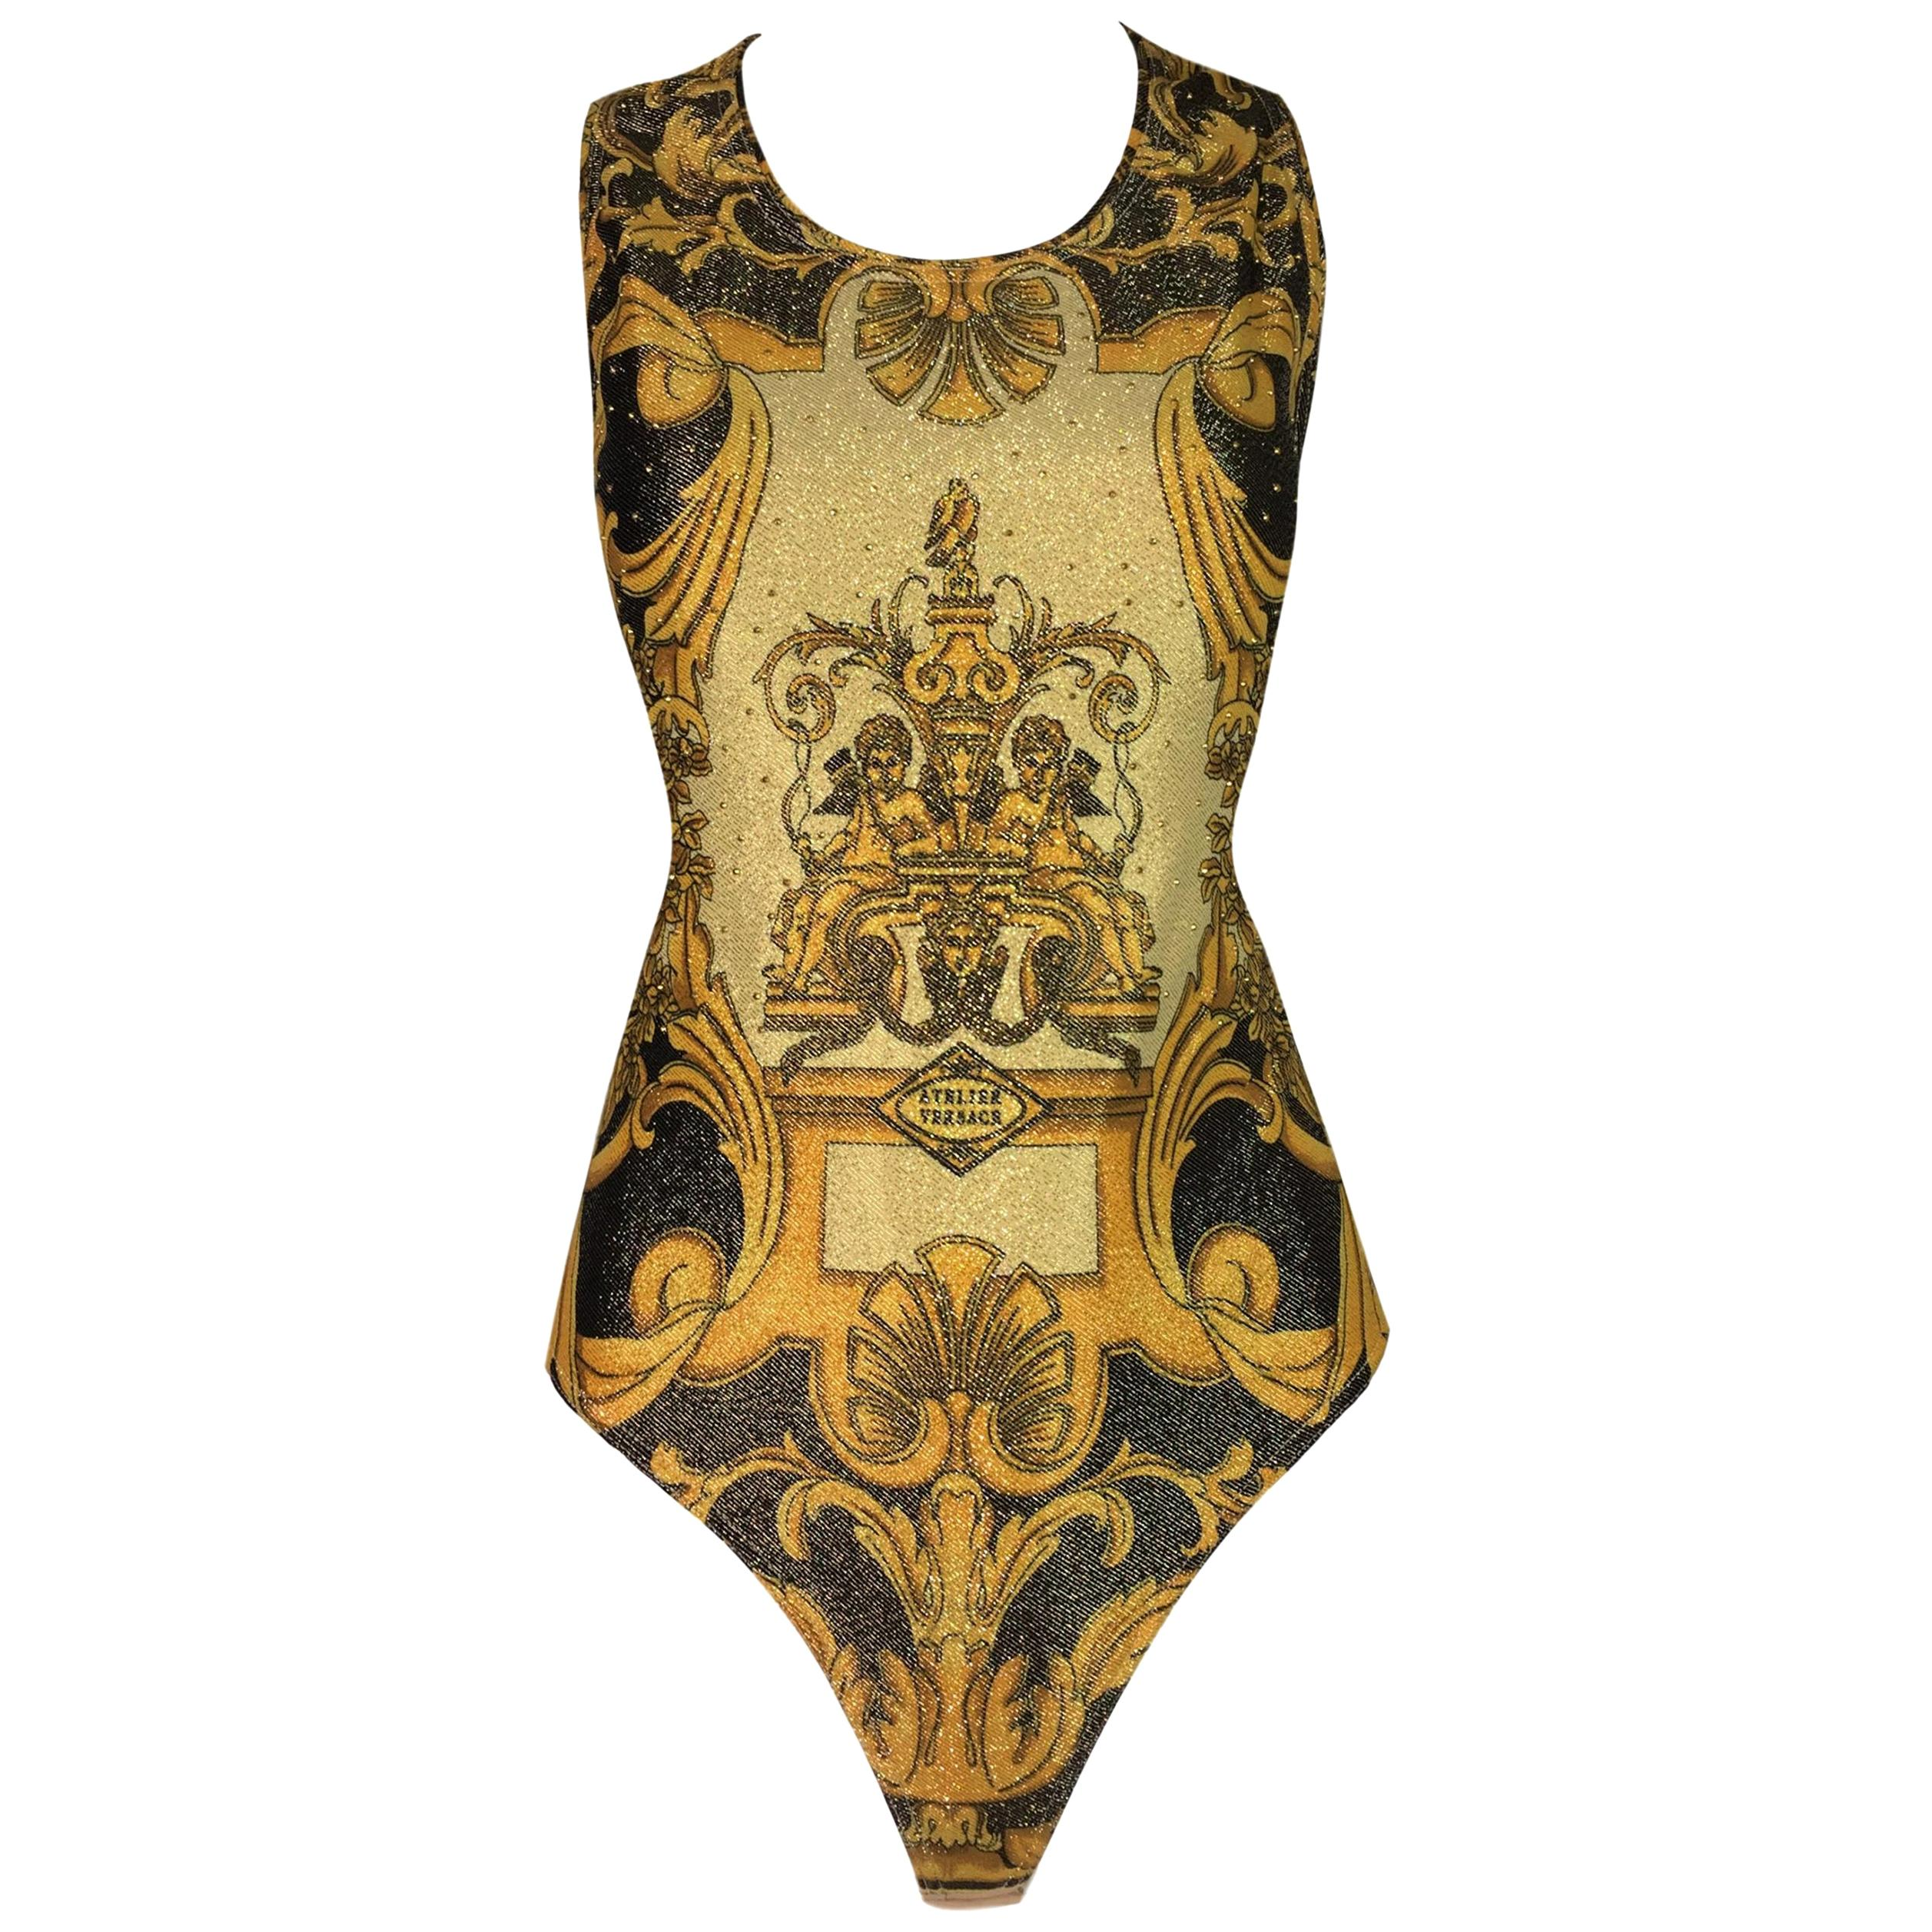 1992 Gianni Versace Atelier Print Gold Studded Bodysuit Top 42